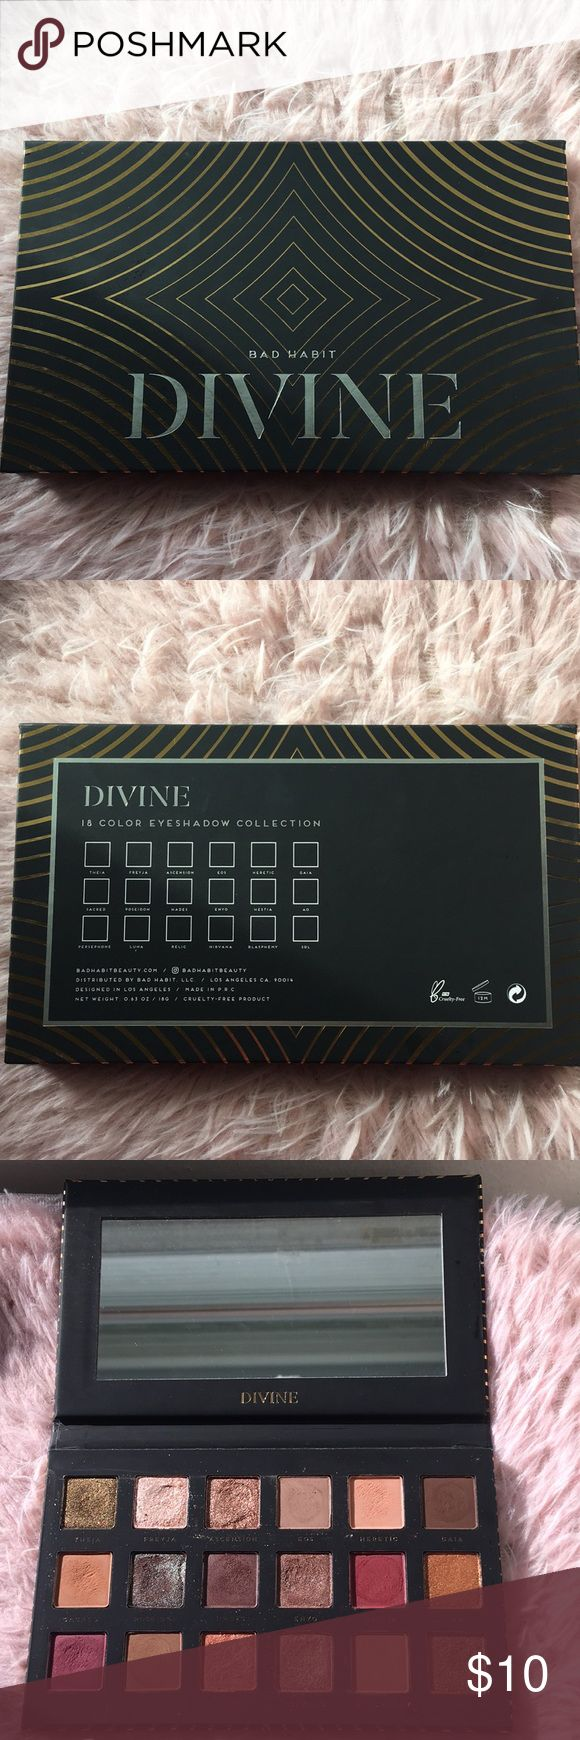 Bad Habit Divine Palette Bad Habit Divine palette. Lightly